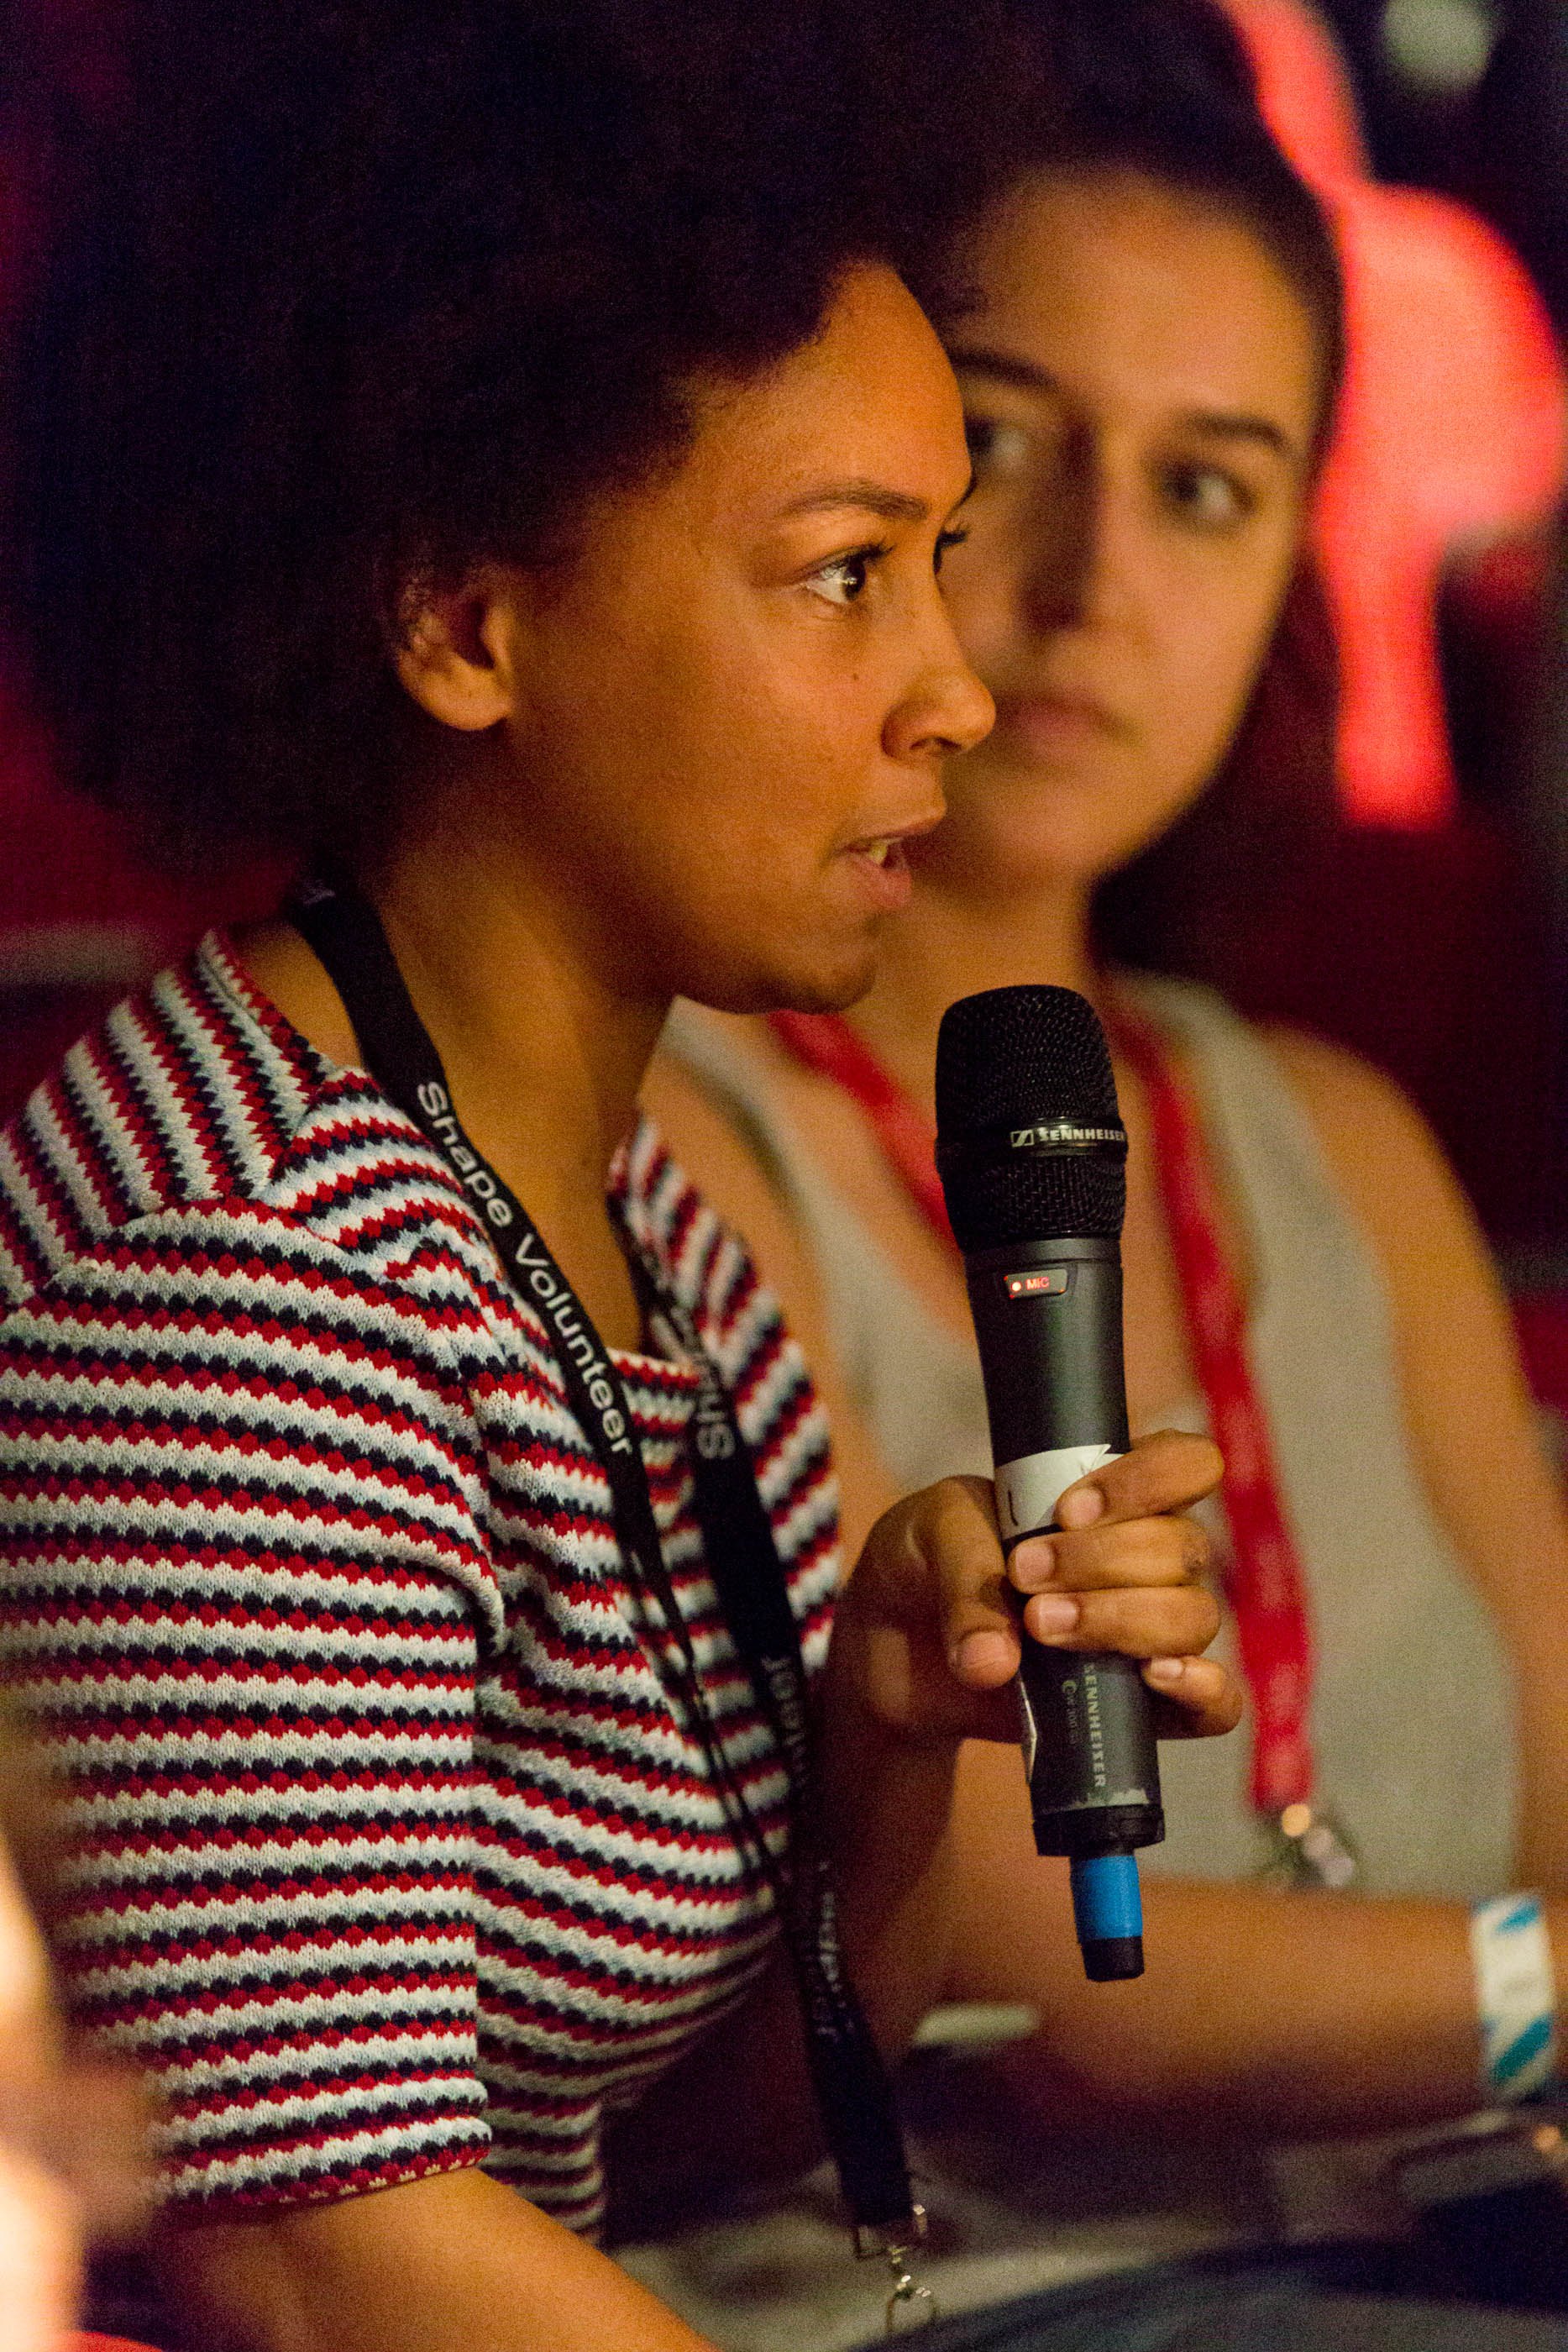 young audience member taking part in a panel discussion